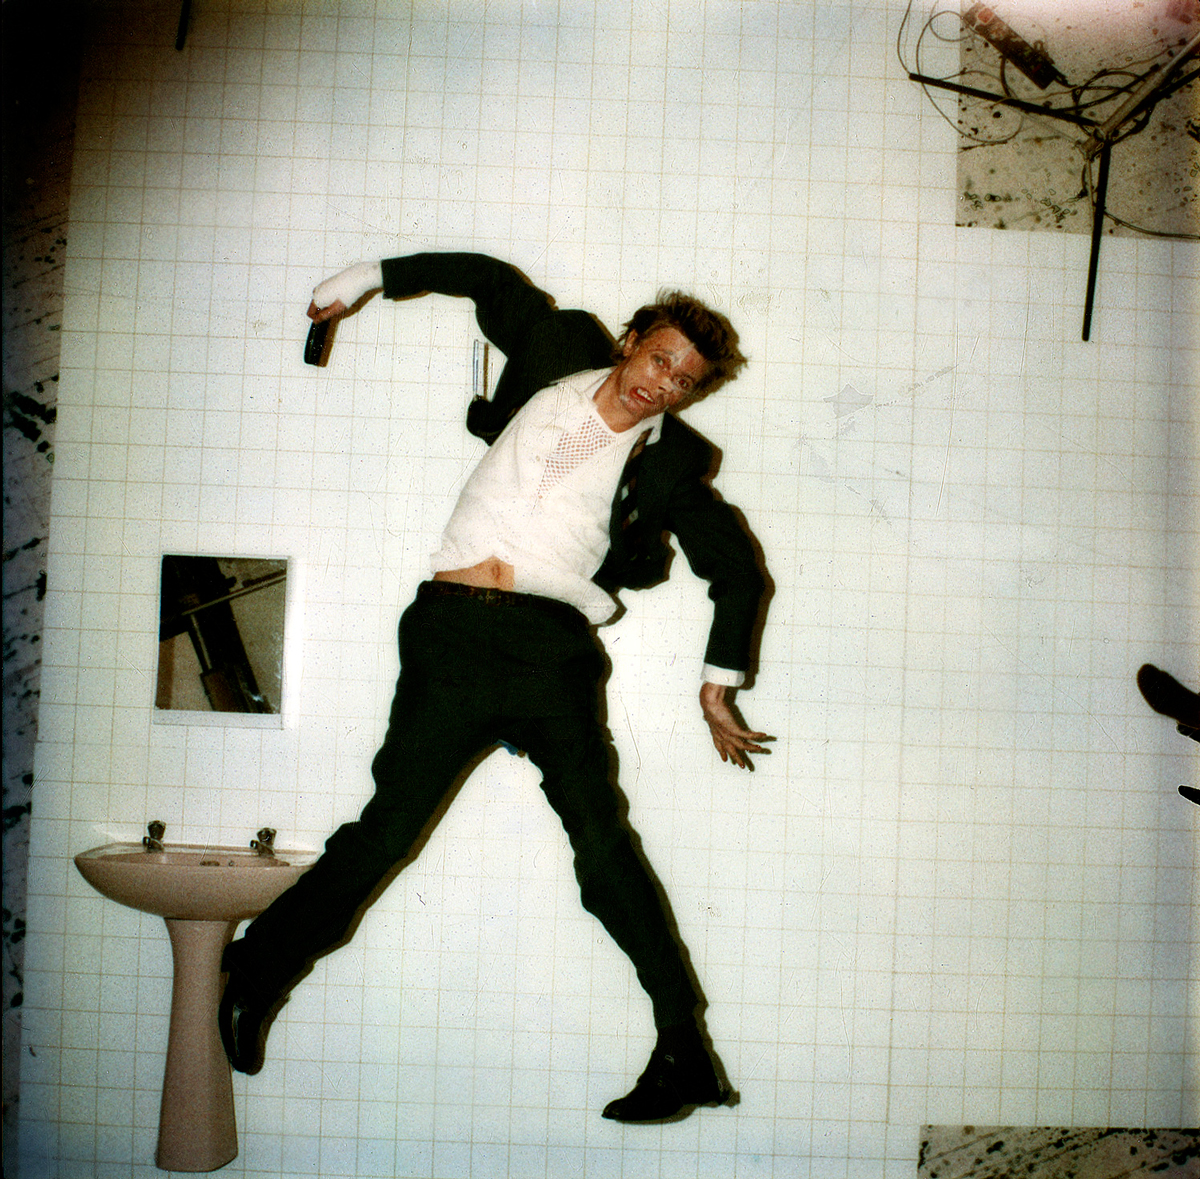 David Bowie – Lodger 'Original Polaroid' image, London 1979; Photo Duffy © Duffy Archive